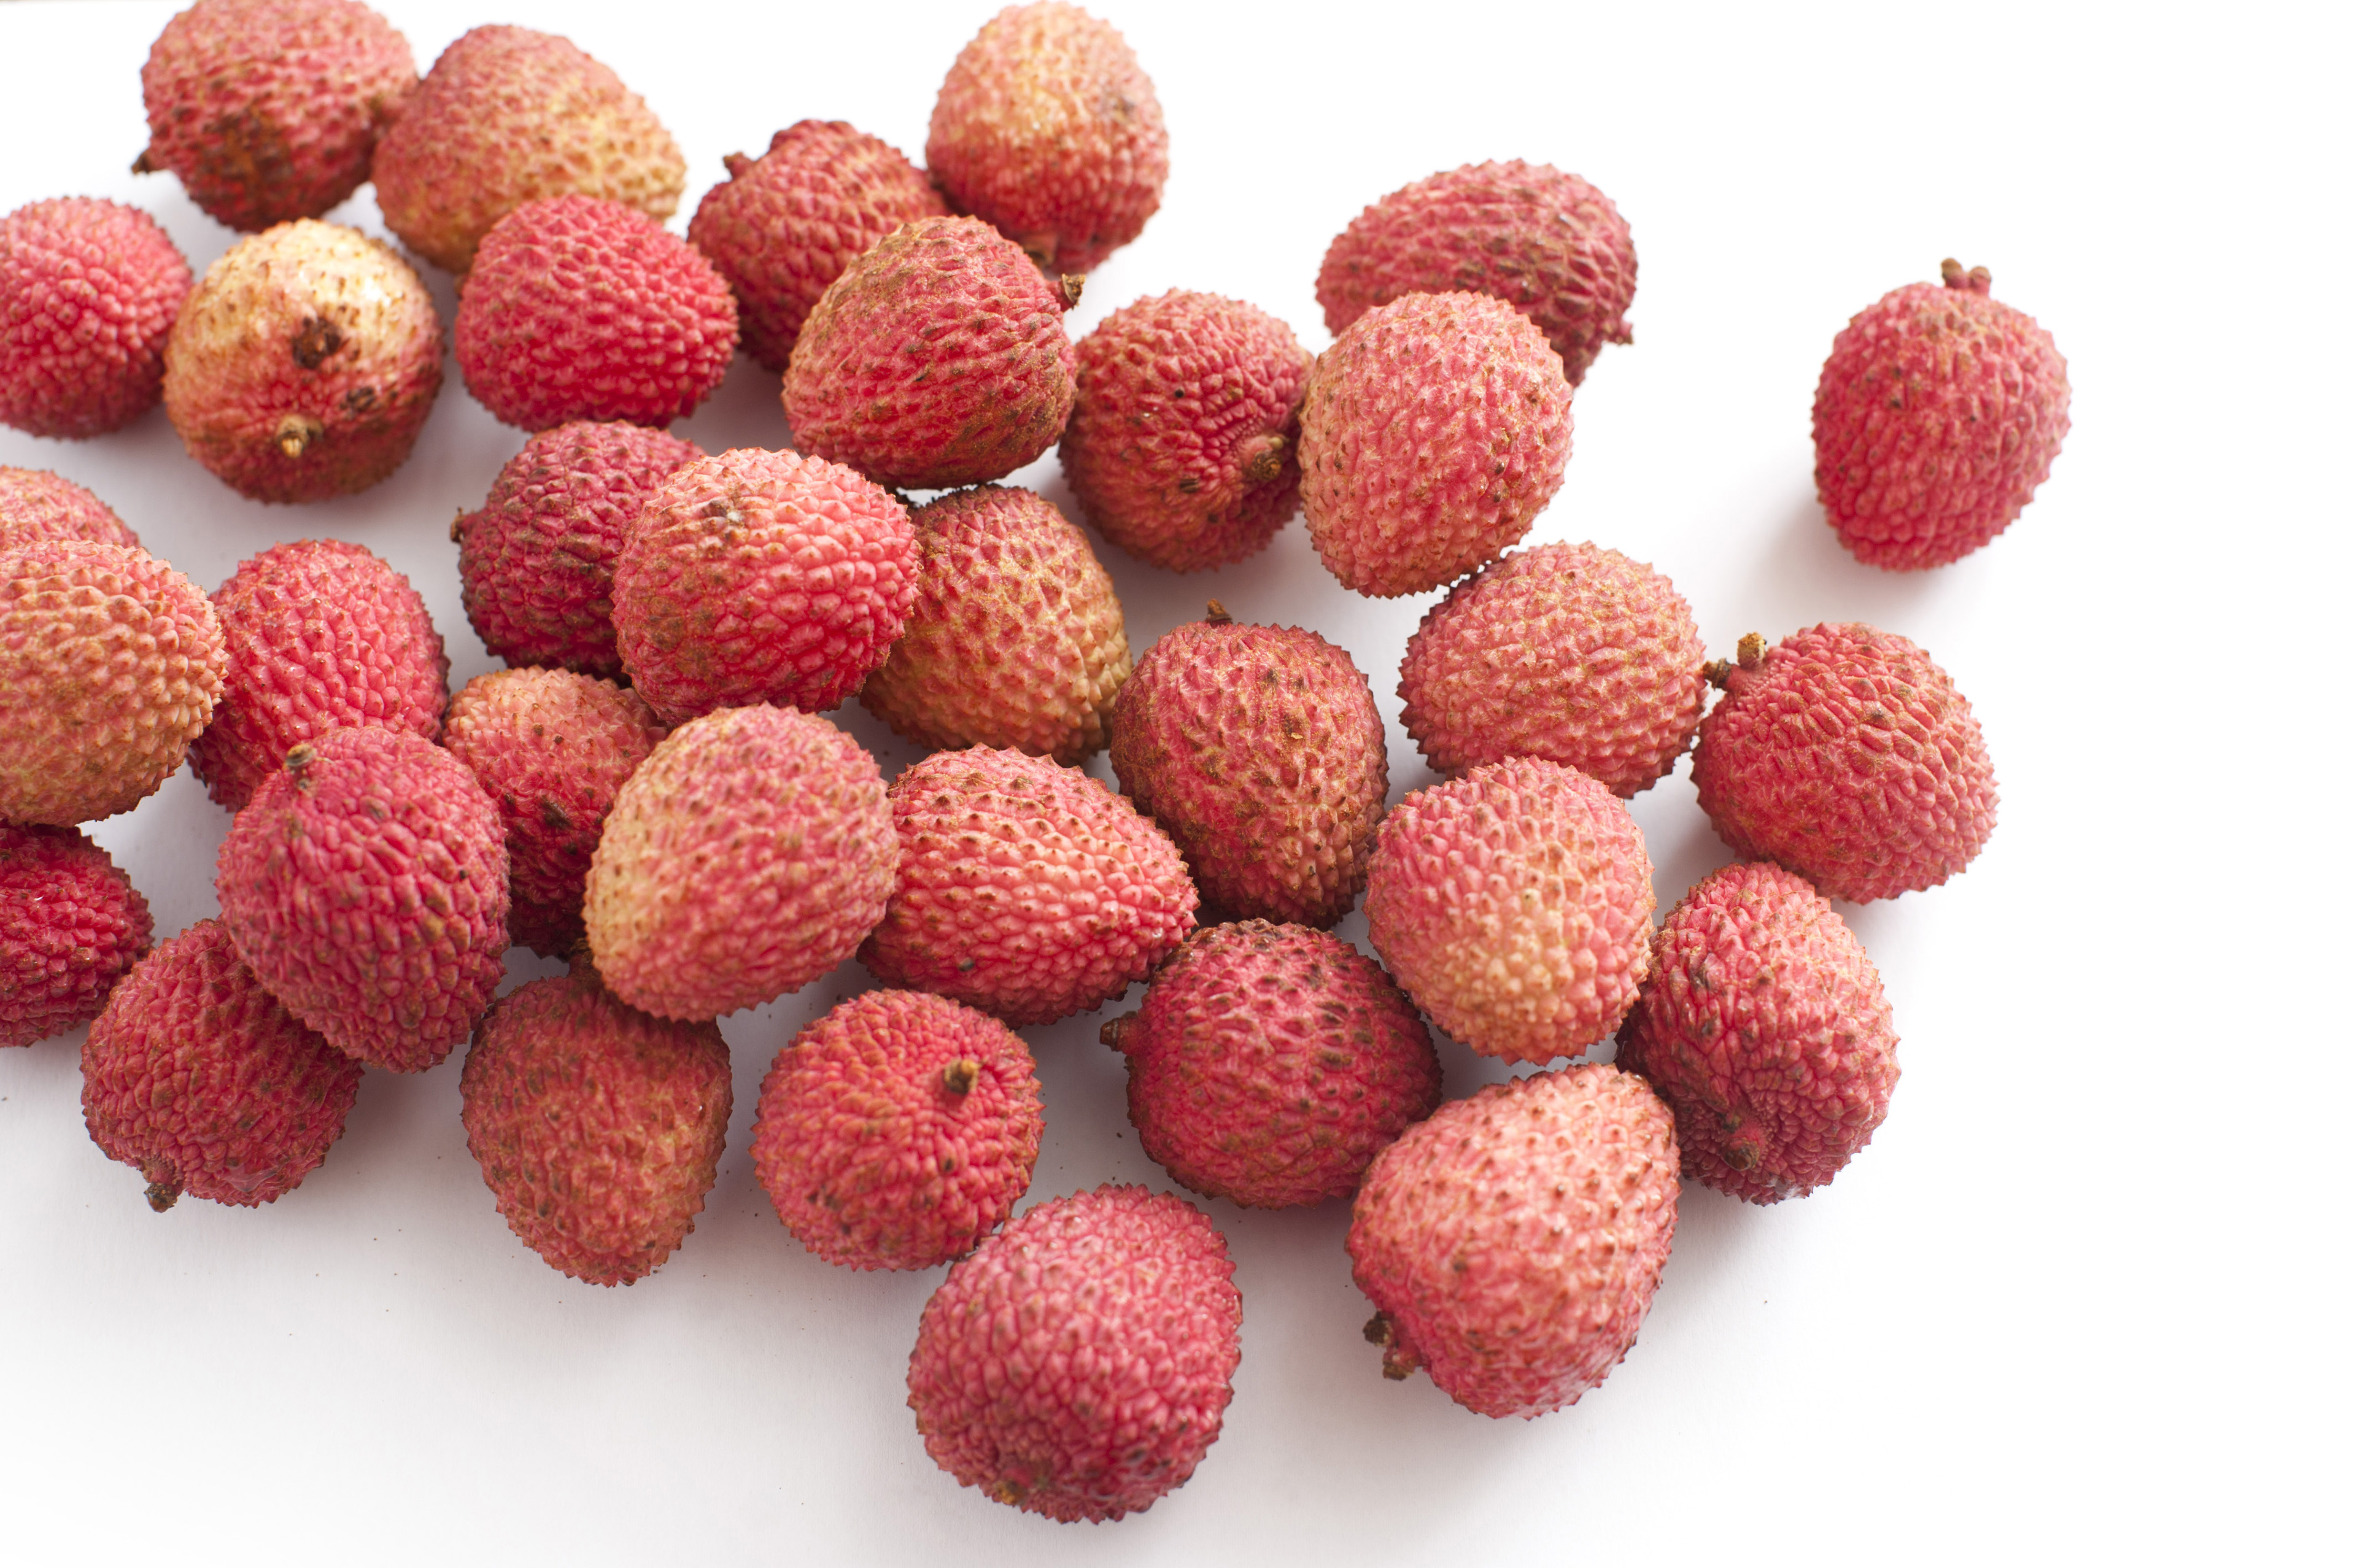 Assortment of Lychee Fruits in Pink and Red Rinds on White Background